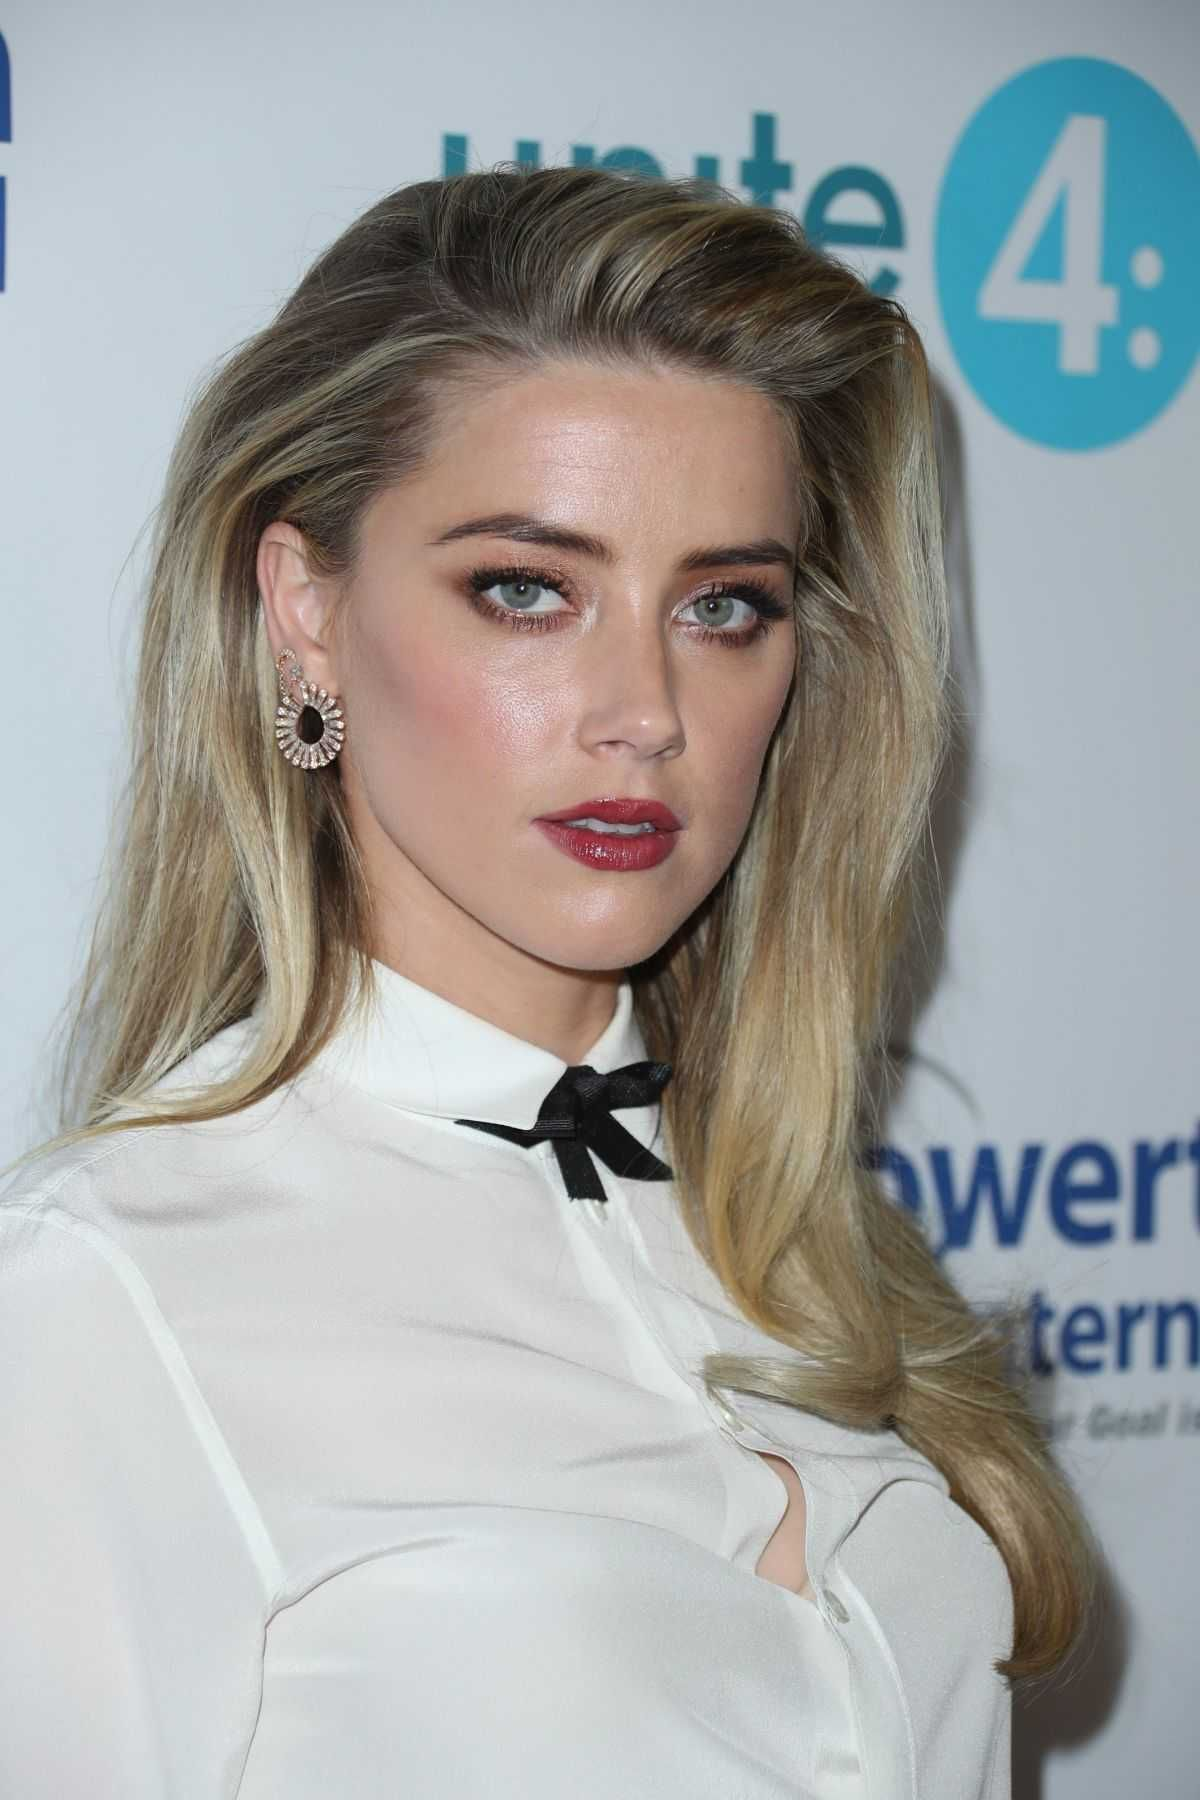 Amberheard Beverlyhills Amber Heard At 4th Annual Unite4 Humanity Gala In Beverly Hills Celebrity Uncensore Amber Heard Hair Amber Heard Style Amber Heard